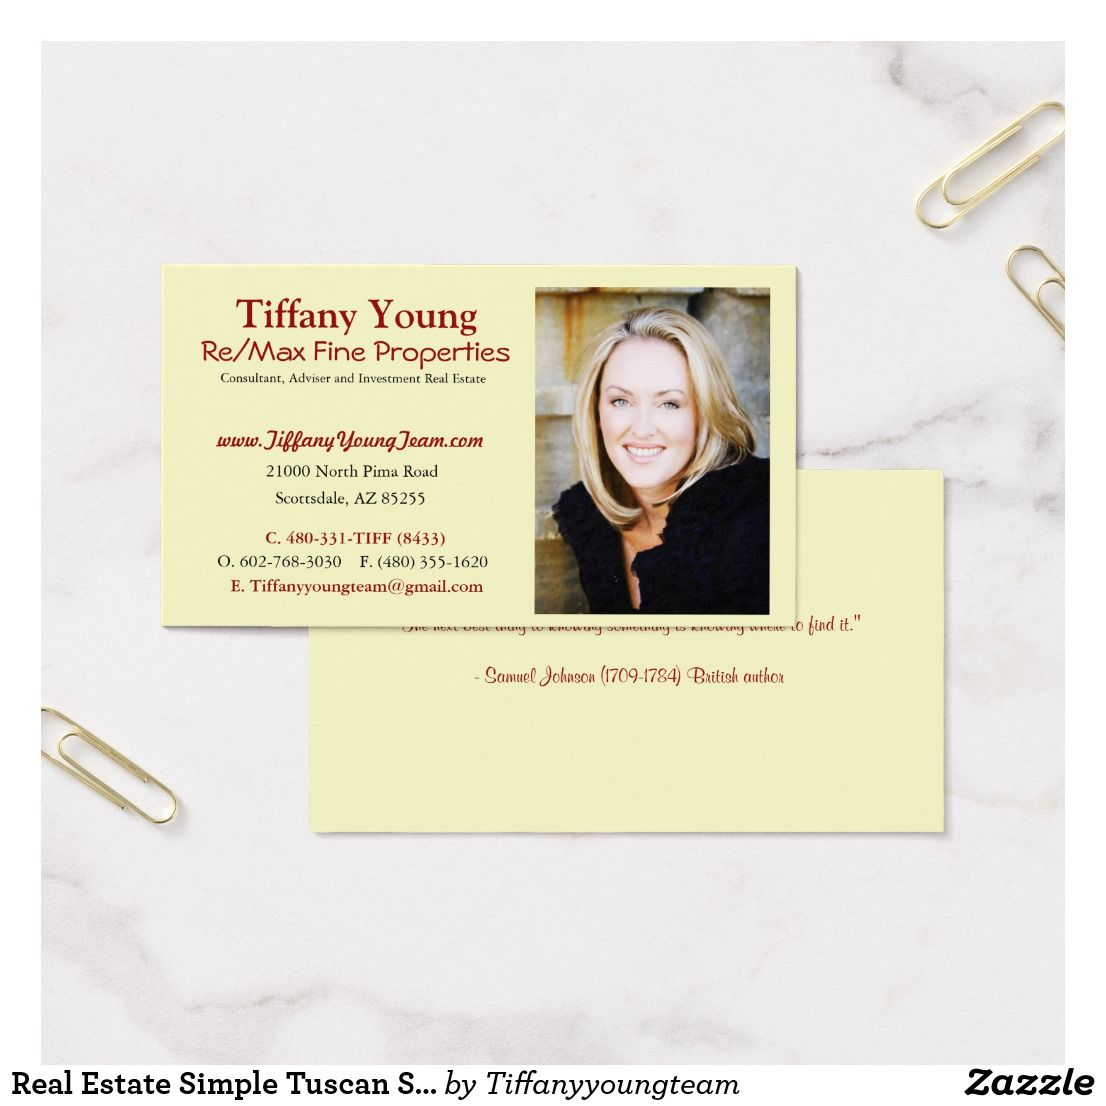 Real estate simple tuscan style photo w quote business card real estate simple tuscan style photo w quote business card magicingreecefo Choice Image